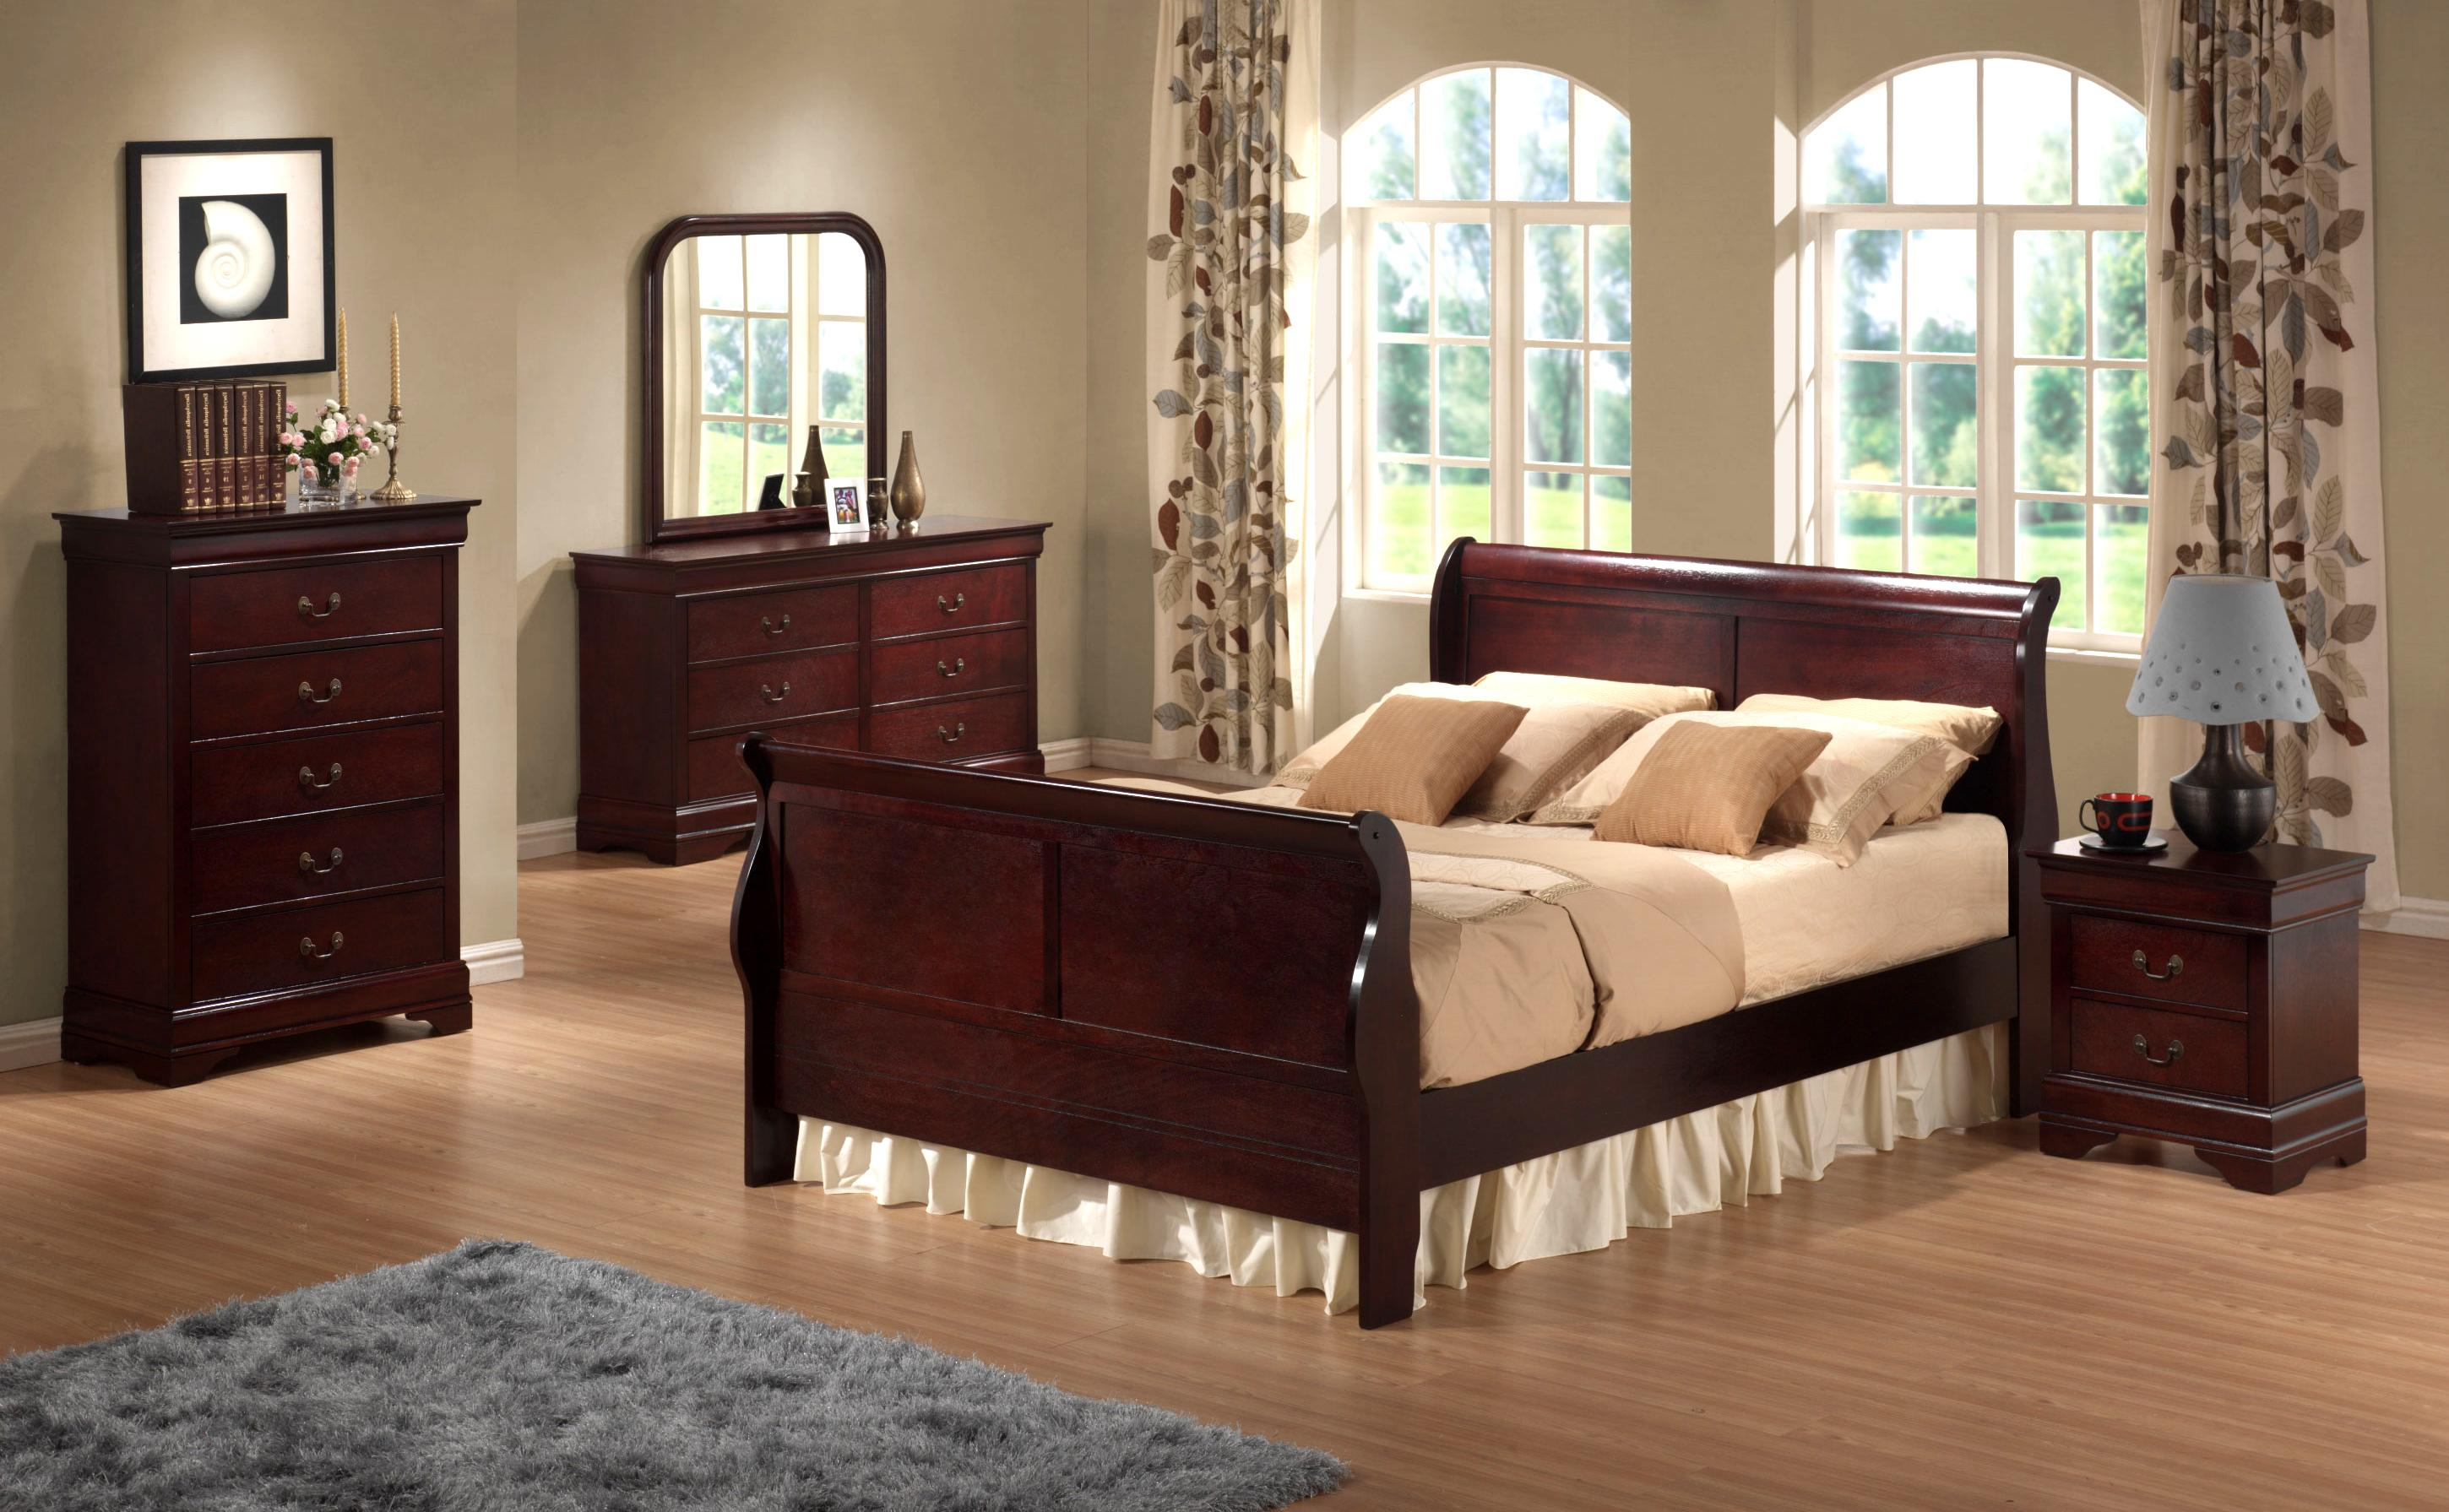 spanish inlet retreat in living upholstered club stanley furniture group transitional sets bedroom king bed my the ikea coastal breach